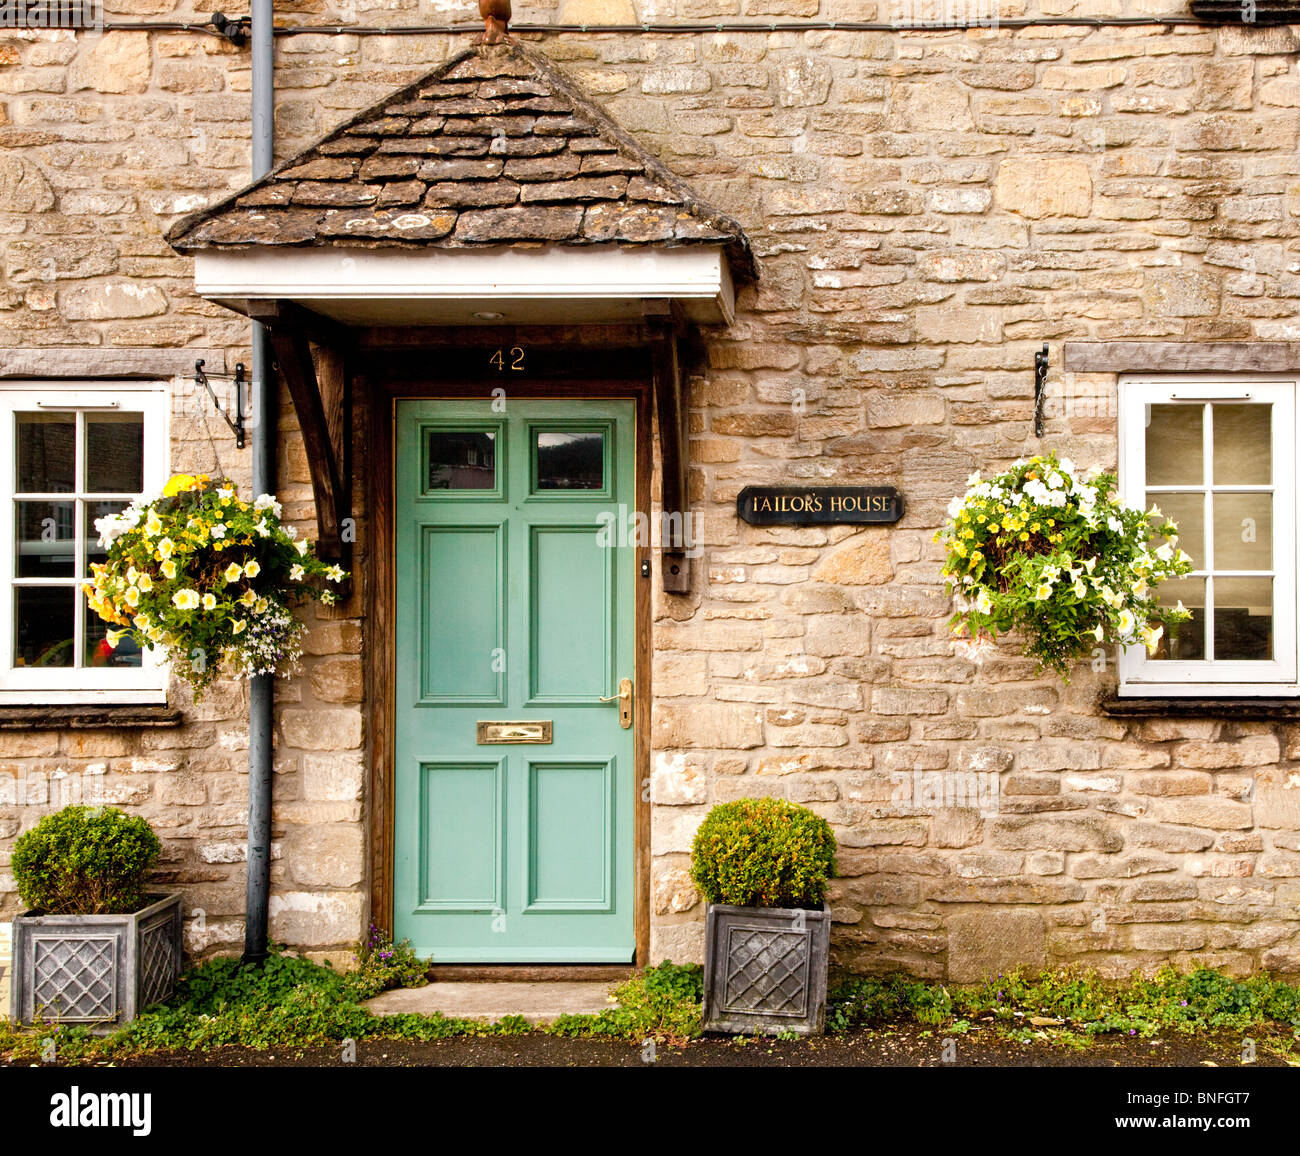 Green wooden front door of an old Cotswold stone cottage in the village of Sherston, Wiltshire, England, UK Stock Photo